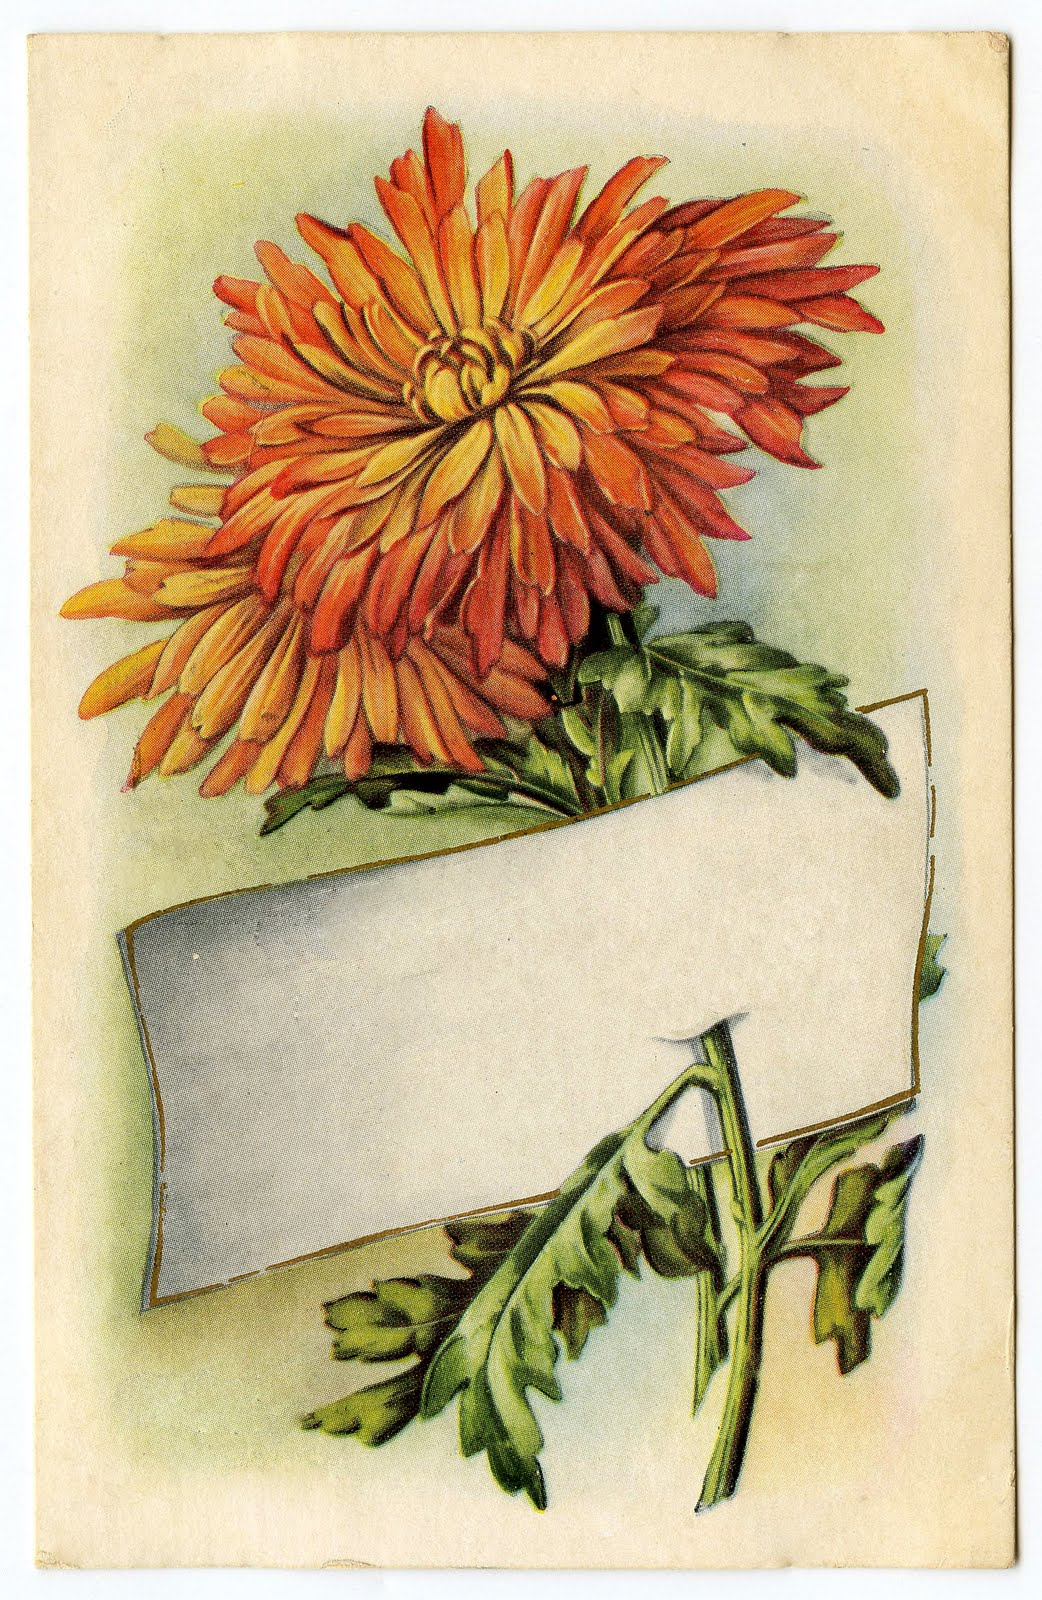 Vintage Thanksgiving Clip Art - Mums - Placecard - The ...